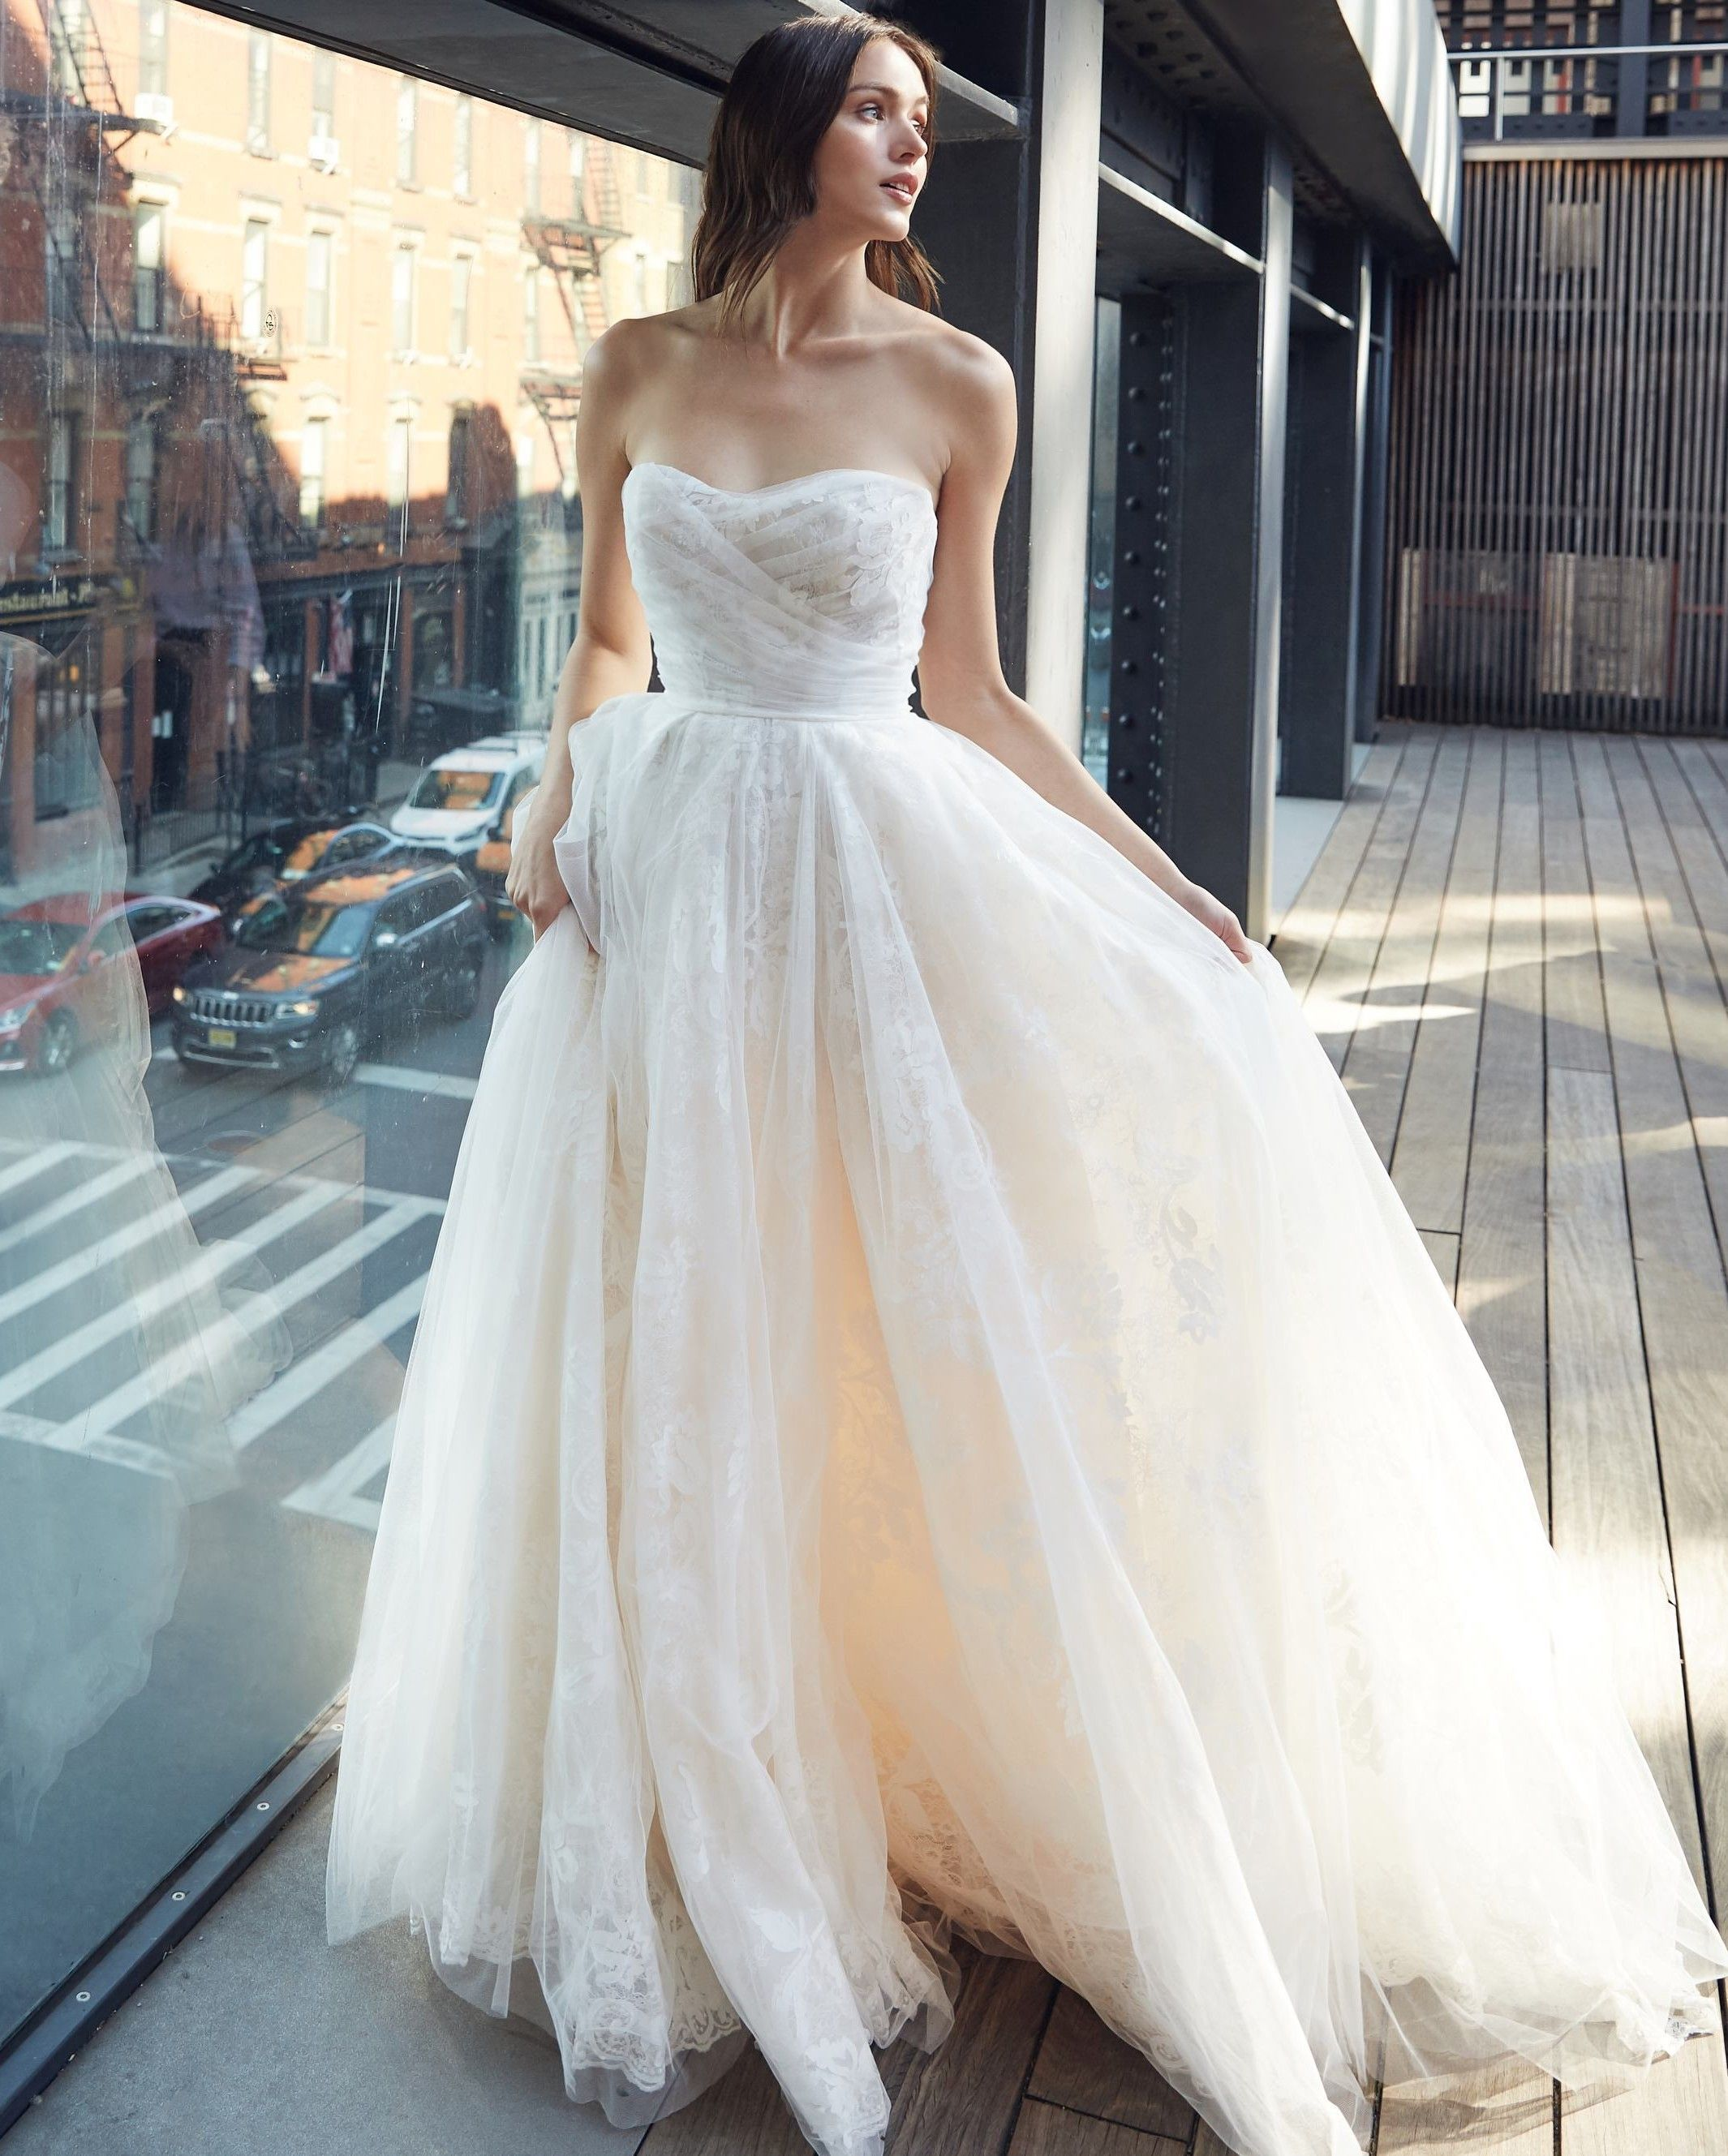 Bliss By Monique Lhuillier Spring 2020 Wedding Dress Collection White Bridal Dresses Bridal Fashion Week Best Wedding Dresses